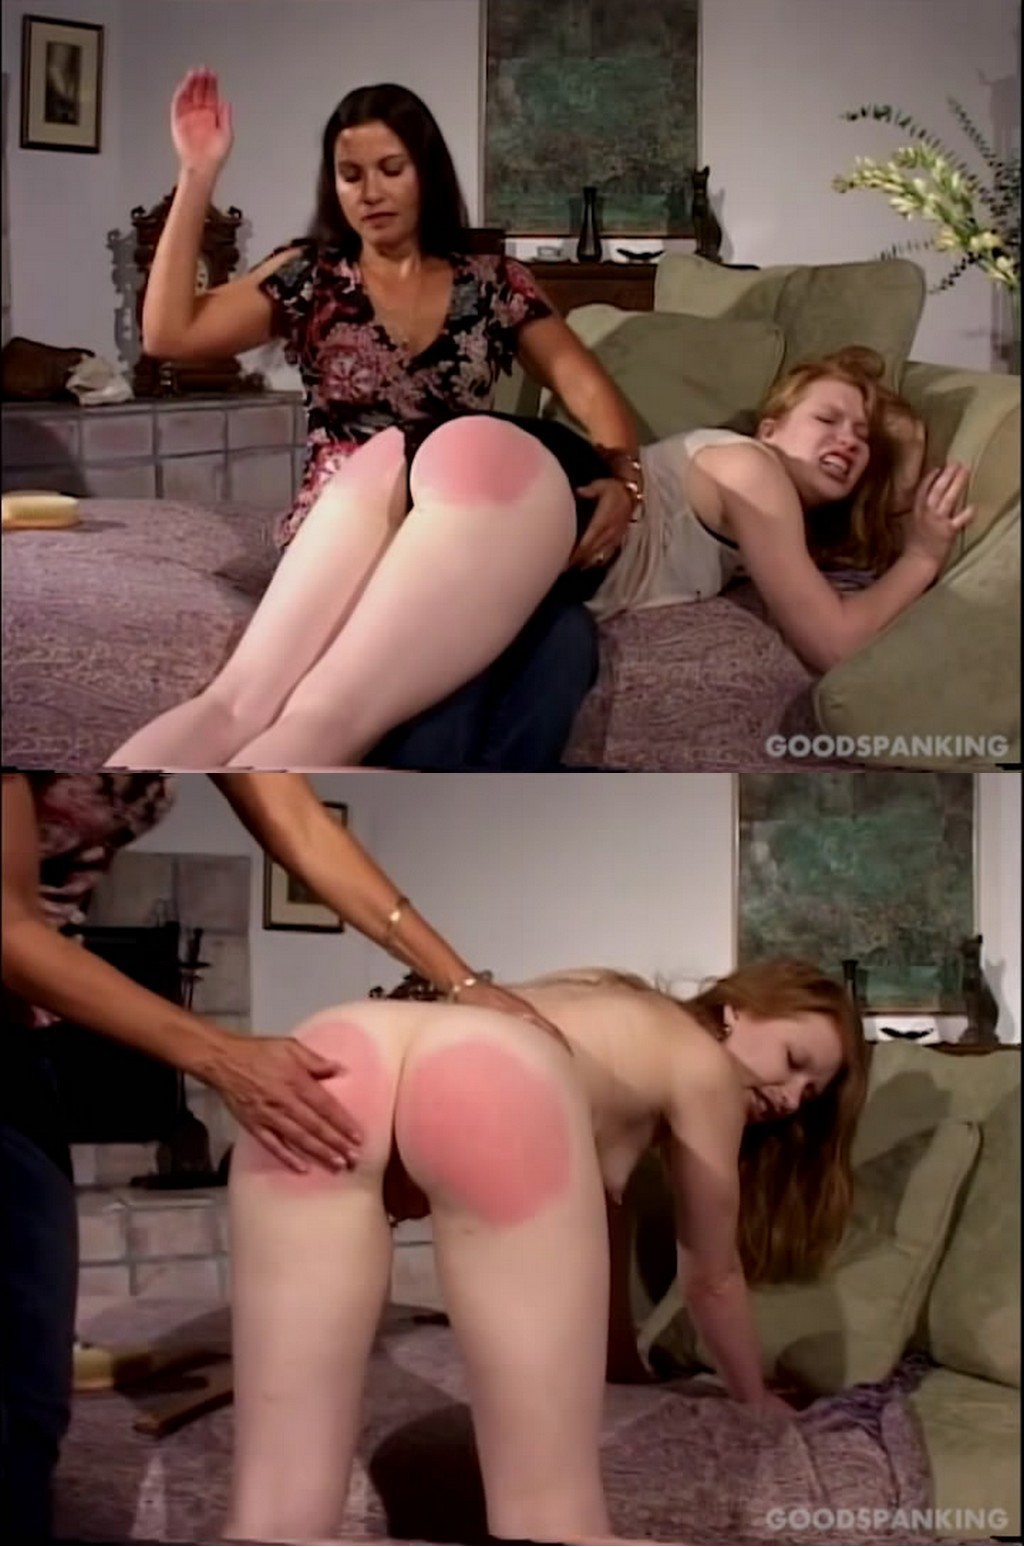 Good Spanking – MP4/SD – Chelsea Pfeiffer, Madison Young – Chelsea Spanks: Madison (Release date: SEP. 29, 2020)